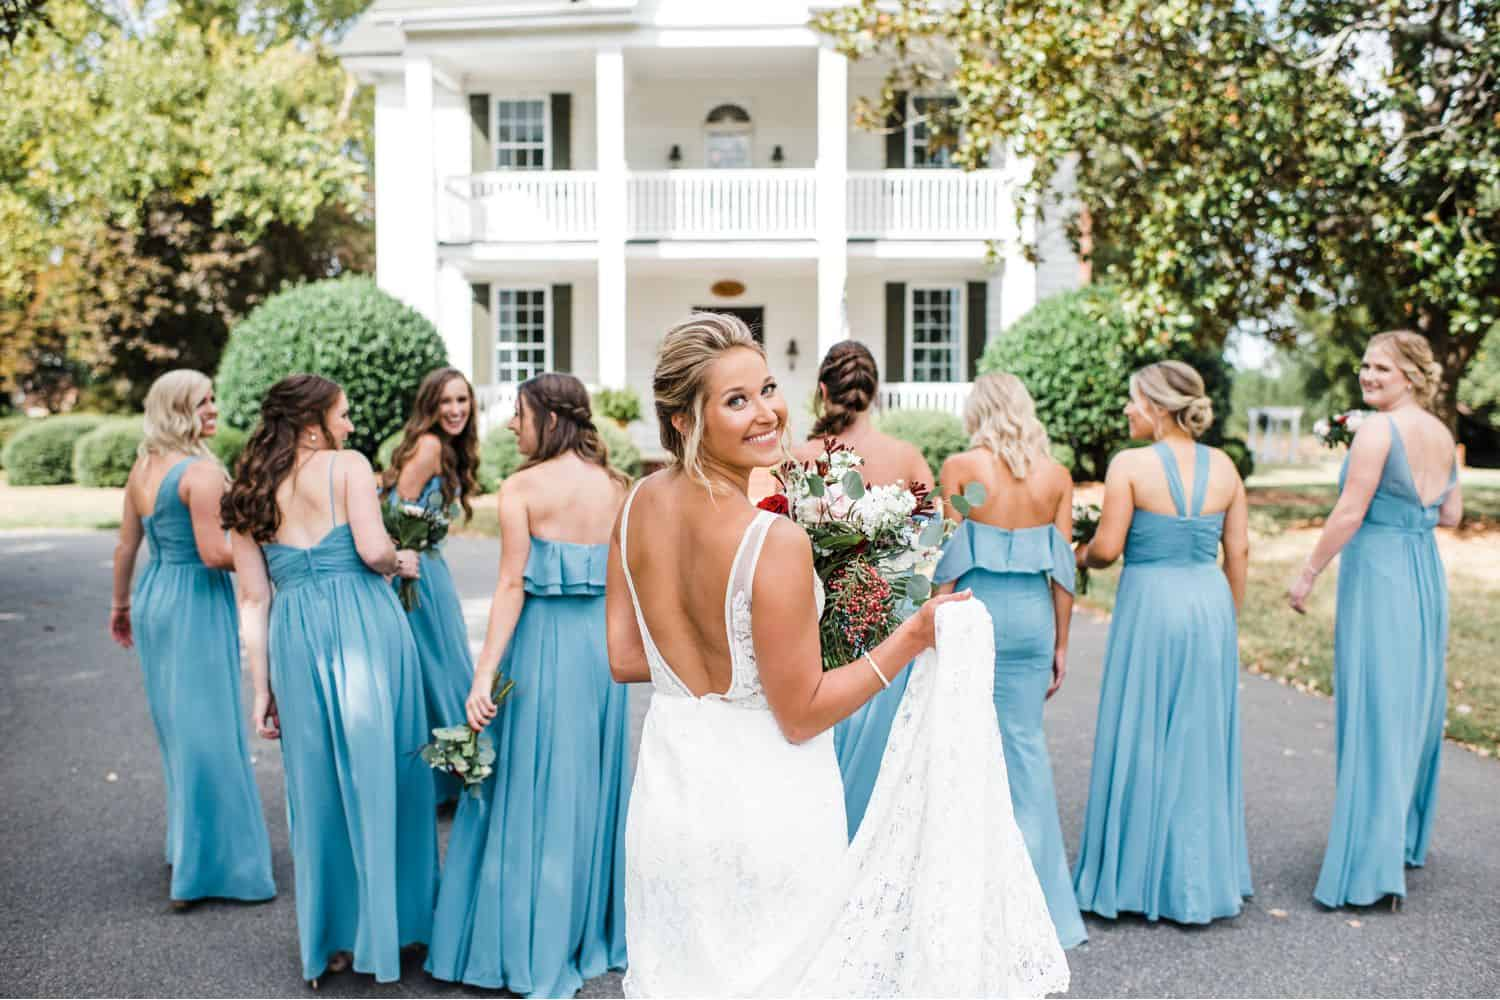 A bride looks back over her shoulder as her bridesmaids walk in front of her toward an antebellum mansion.